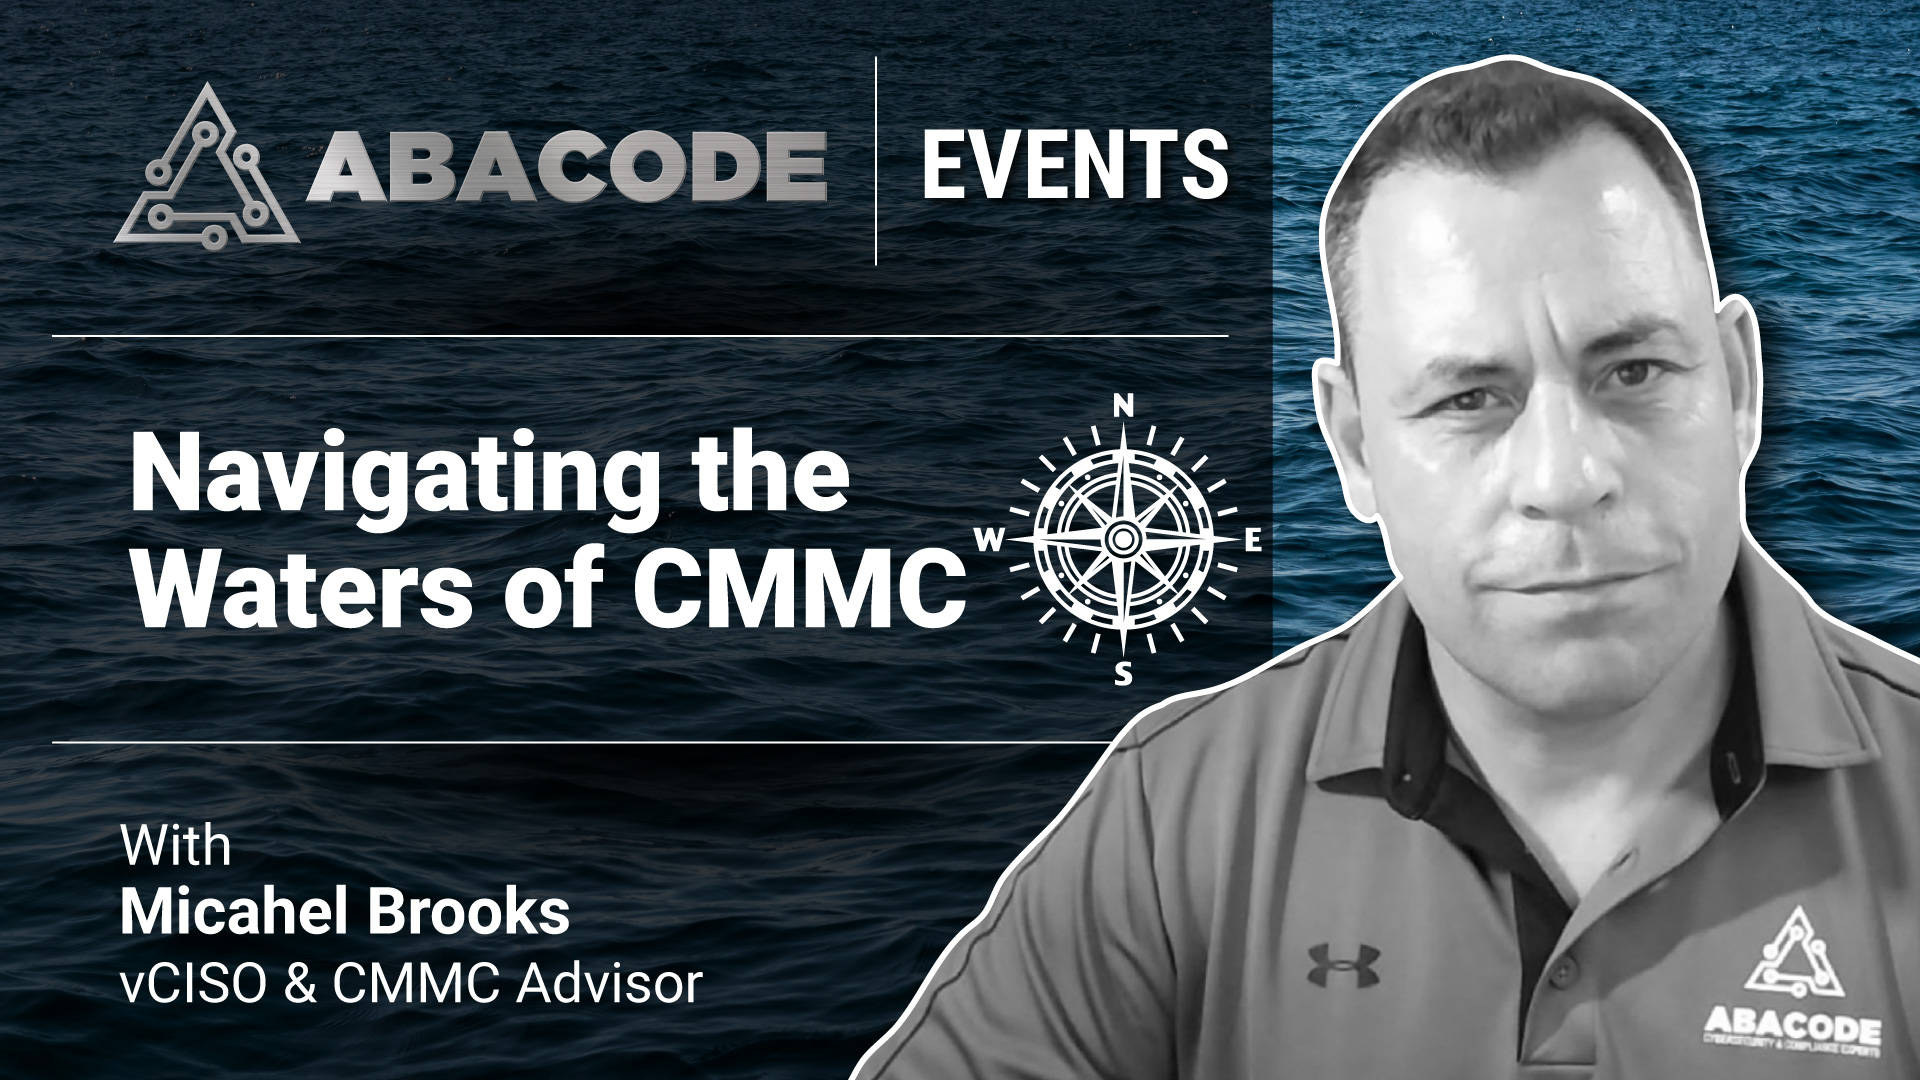 Navigating The Waters of CMMC- A Virtual Solution Workshop by Abacode